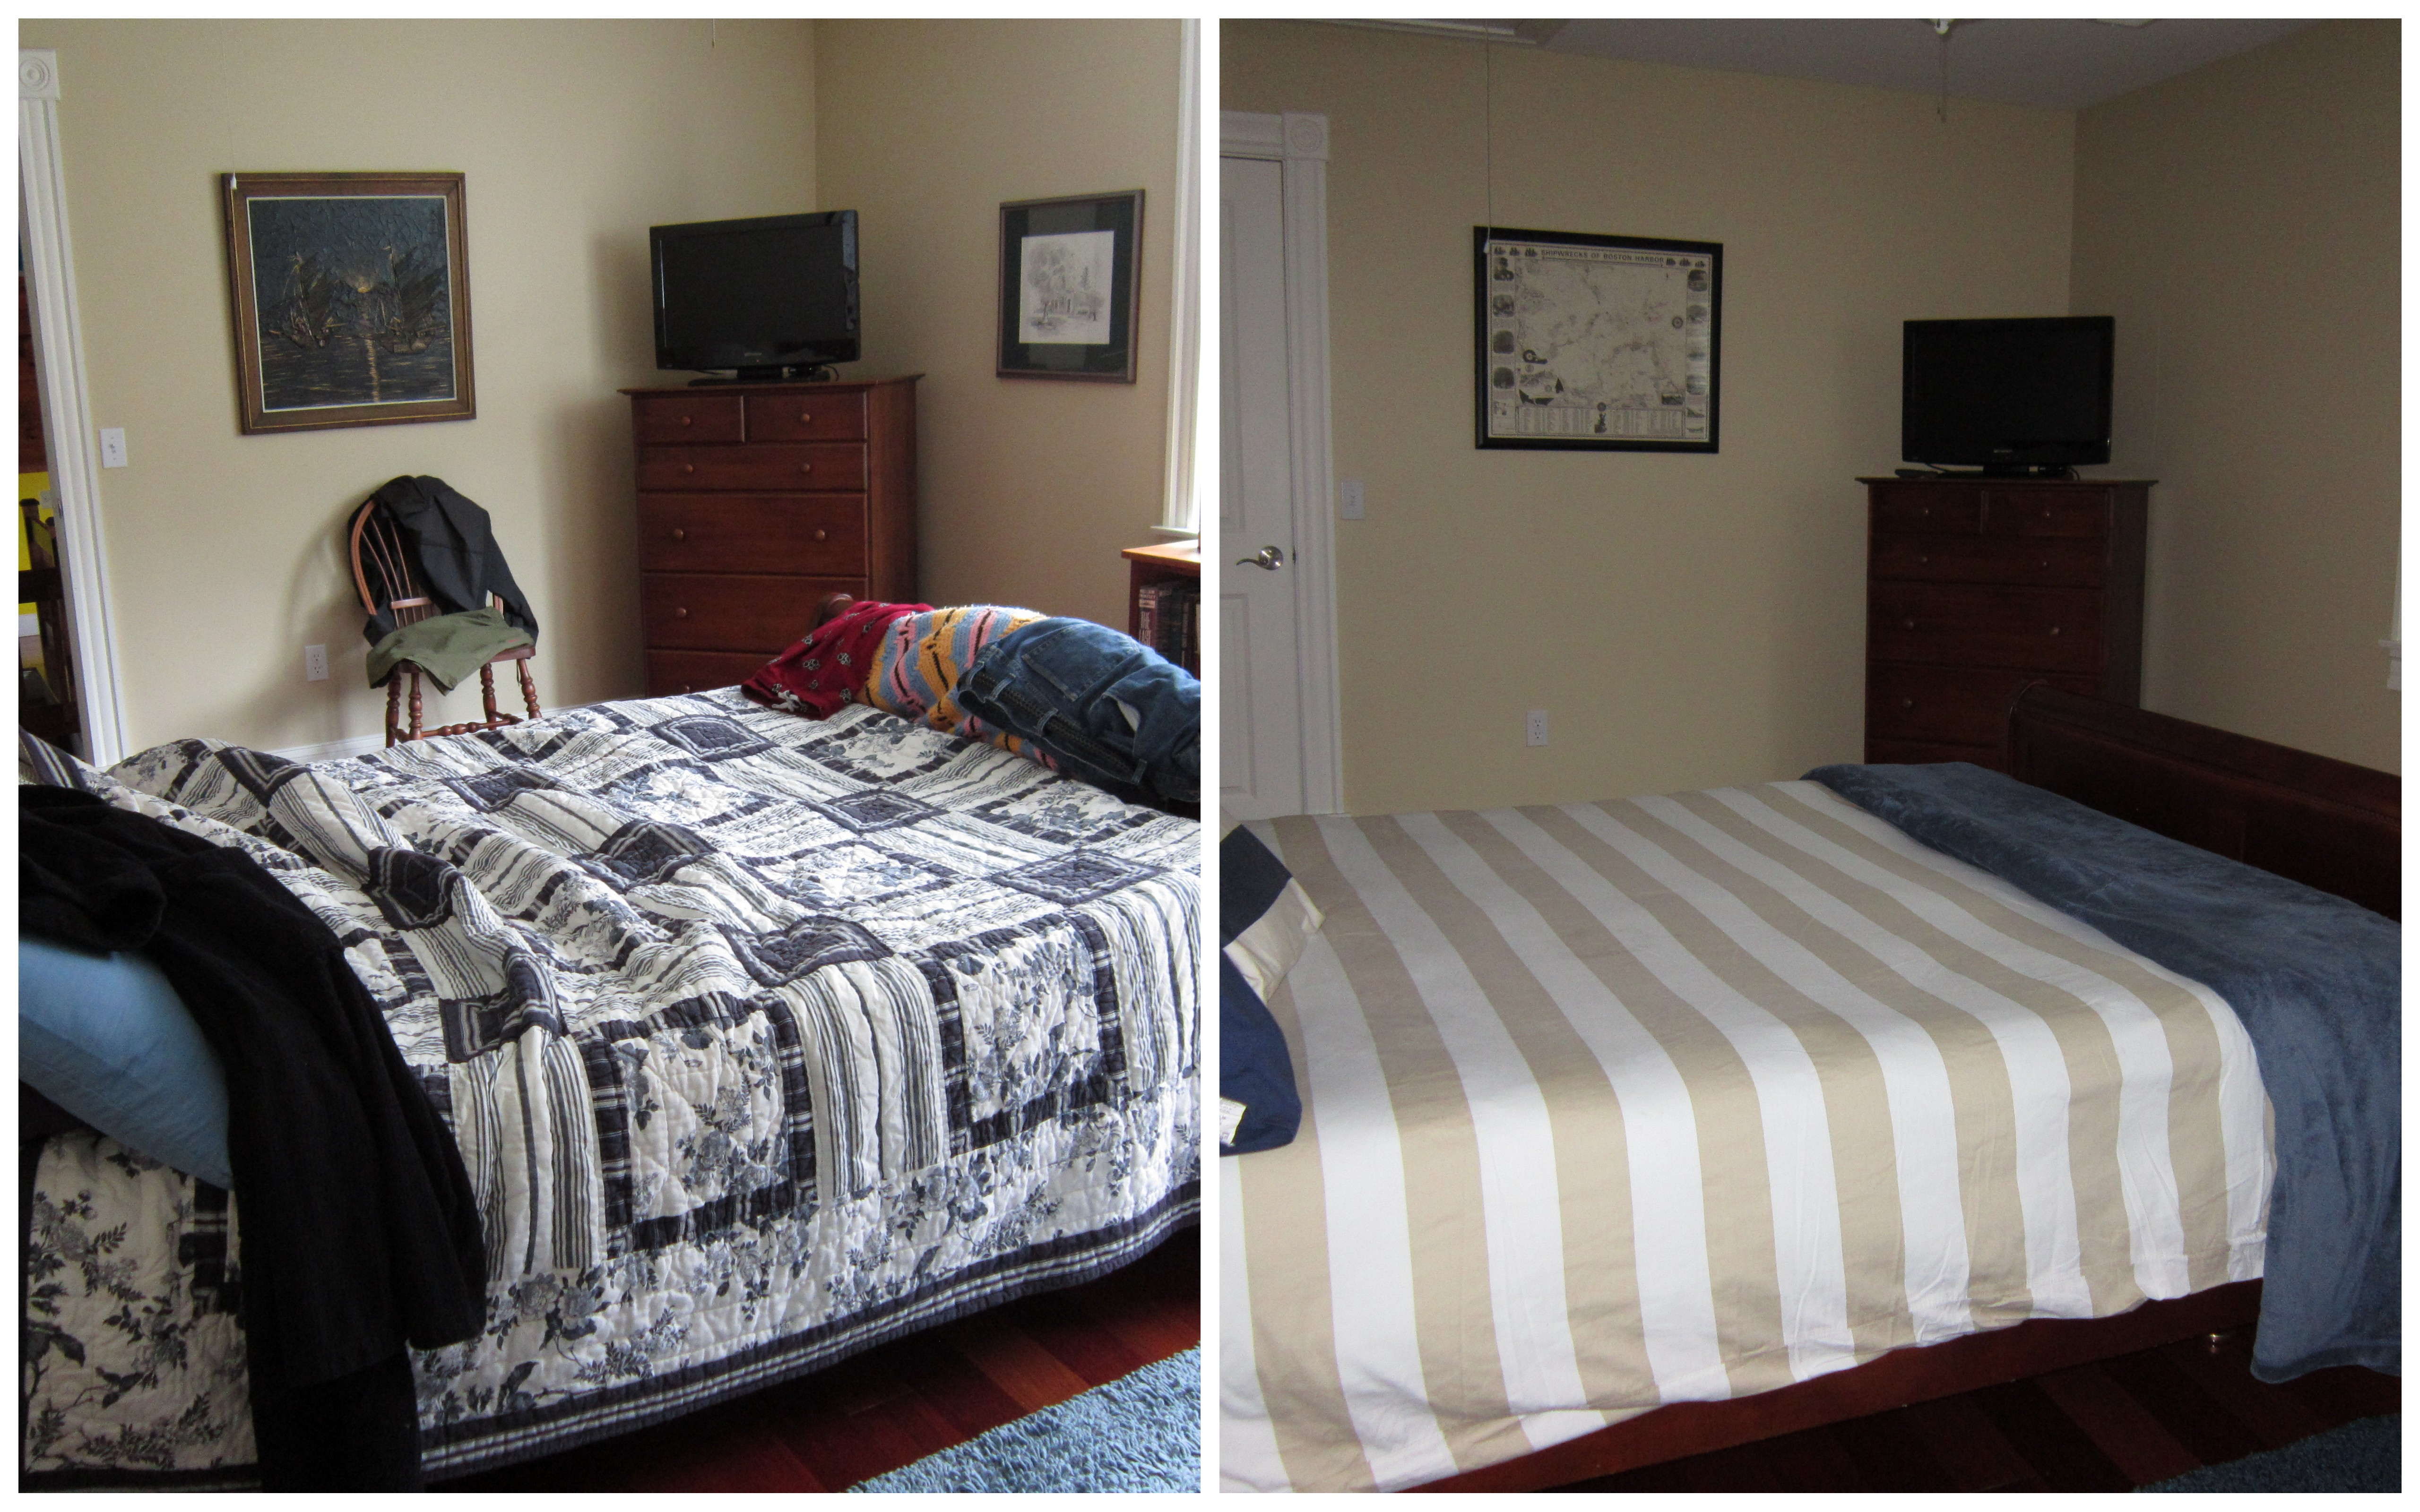 Before & After Pics13